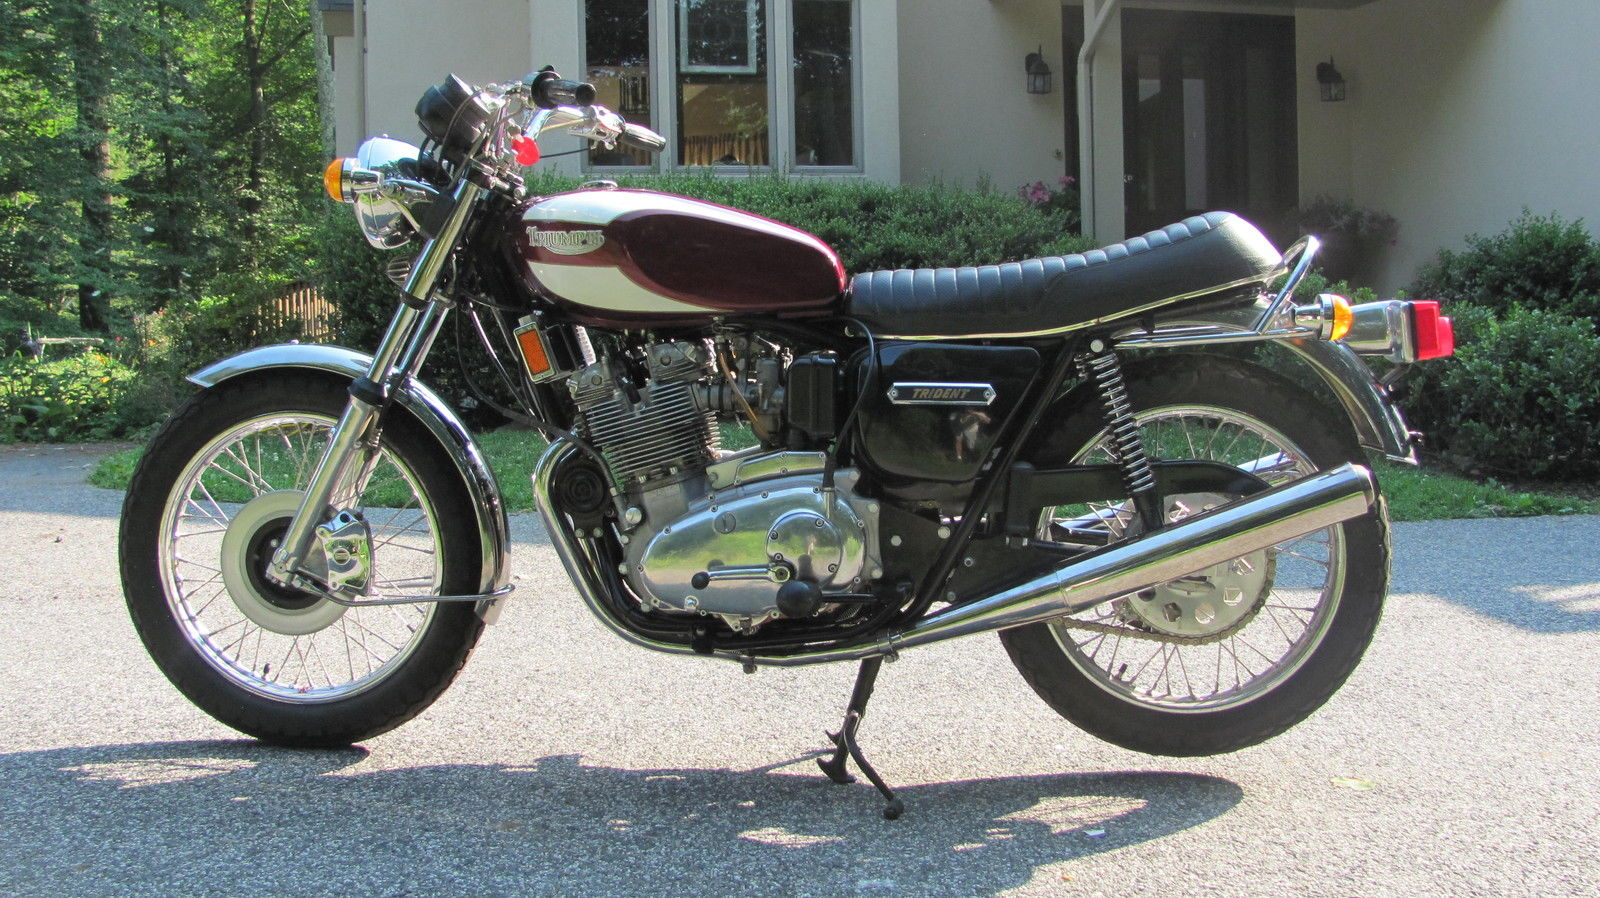 Triumph Trident T160 - 1975 - Left Side View, Triumph Tank Badge, Chain Guard, Forks and Front Fender.